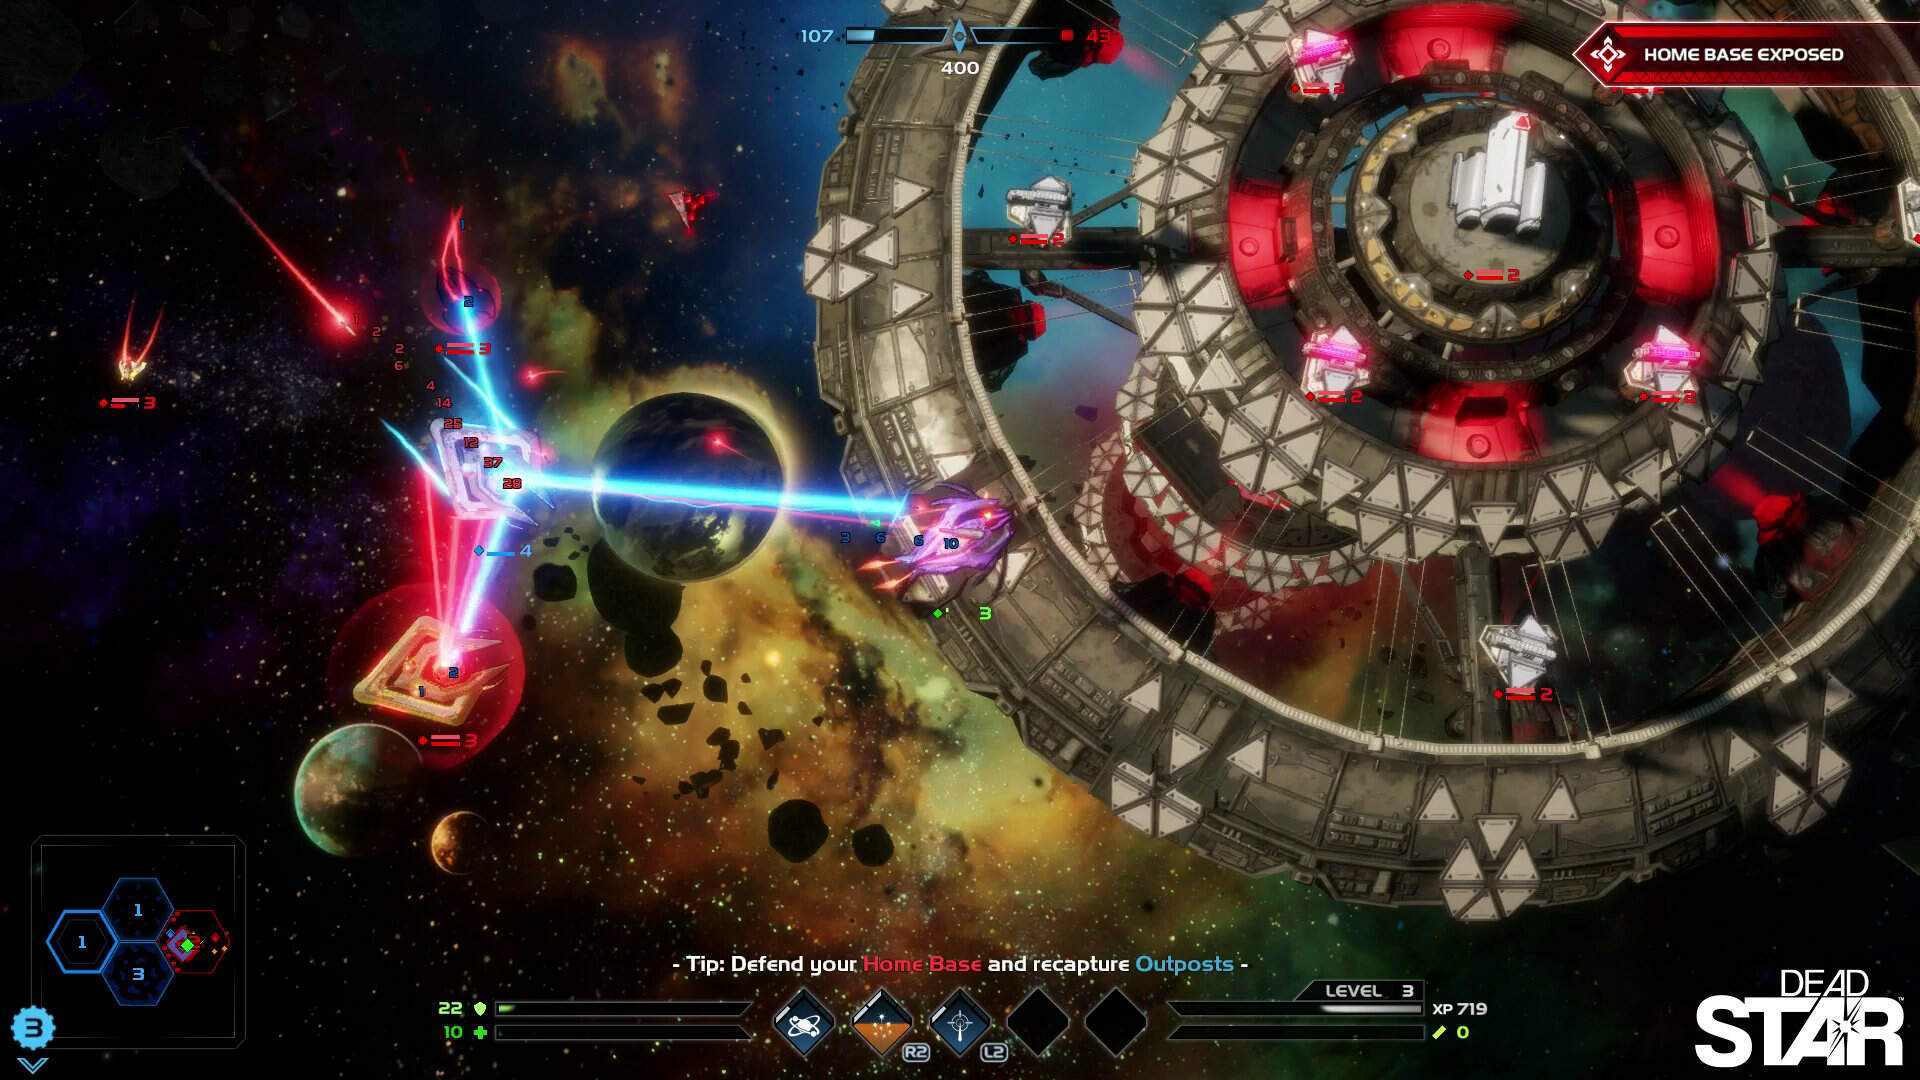 Dead Star PS4 Review: Space Shooter Meets MOBA Variant